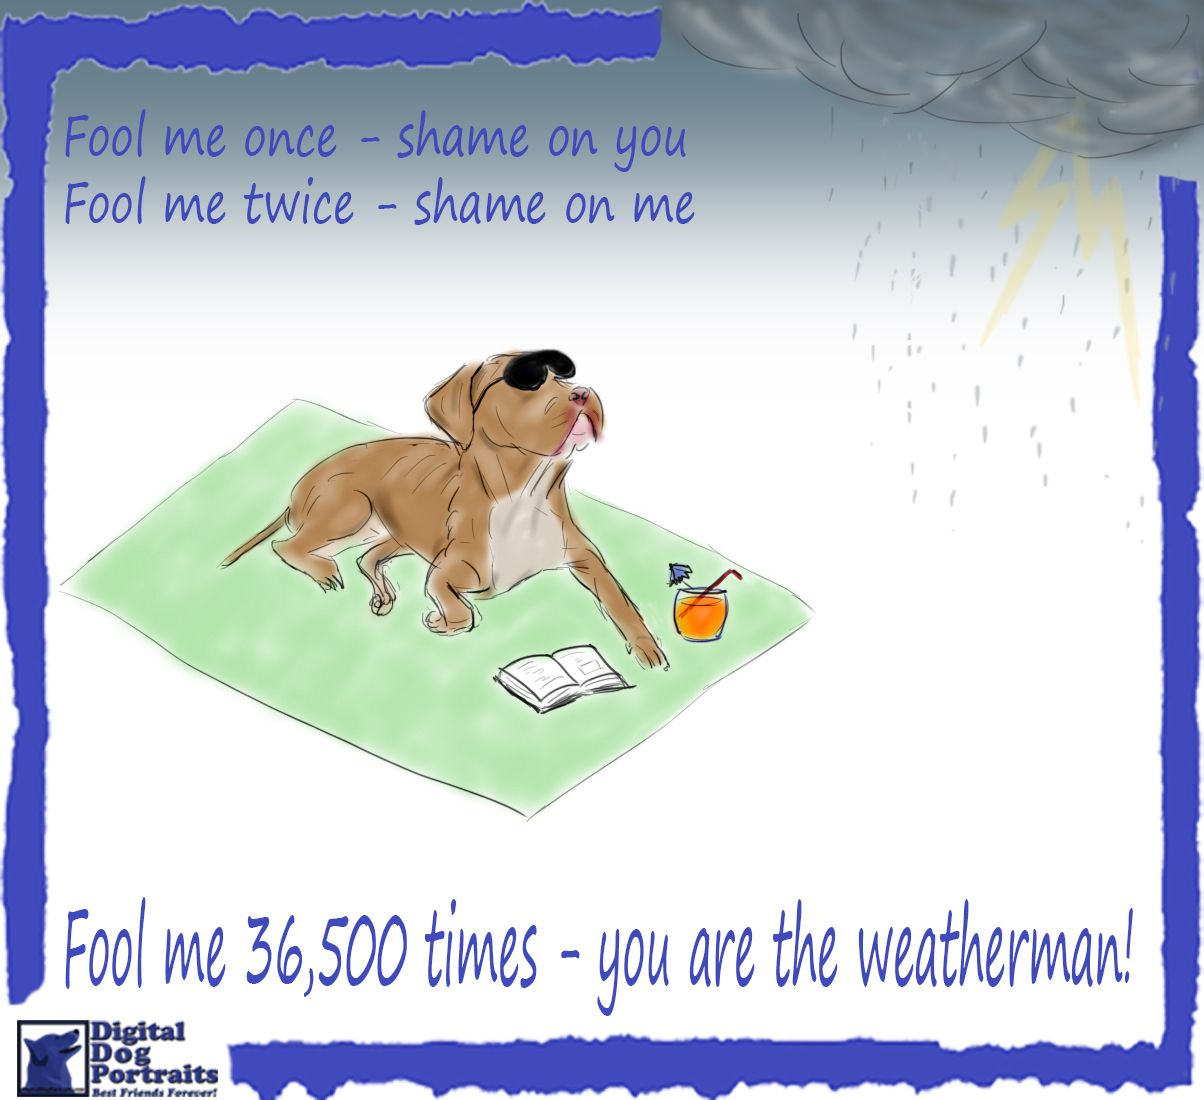 Cold Rainy Day Funny Quotes: This Time He Nailed It! The Weatherman Got It Right, It's